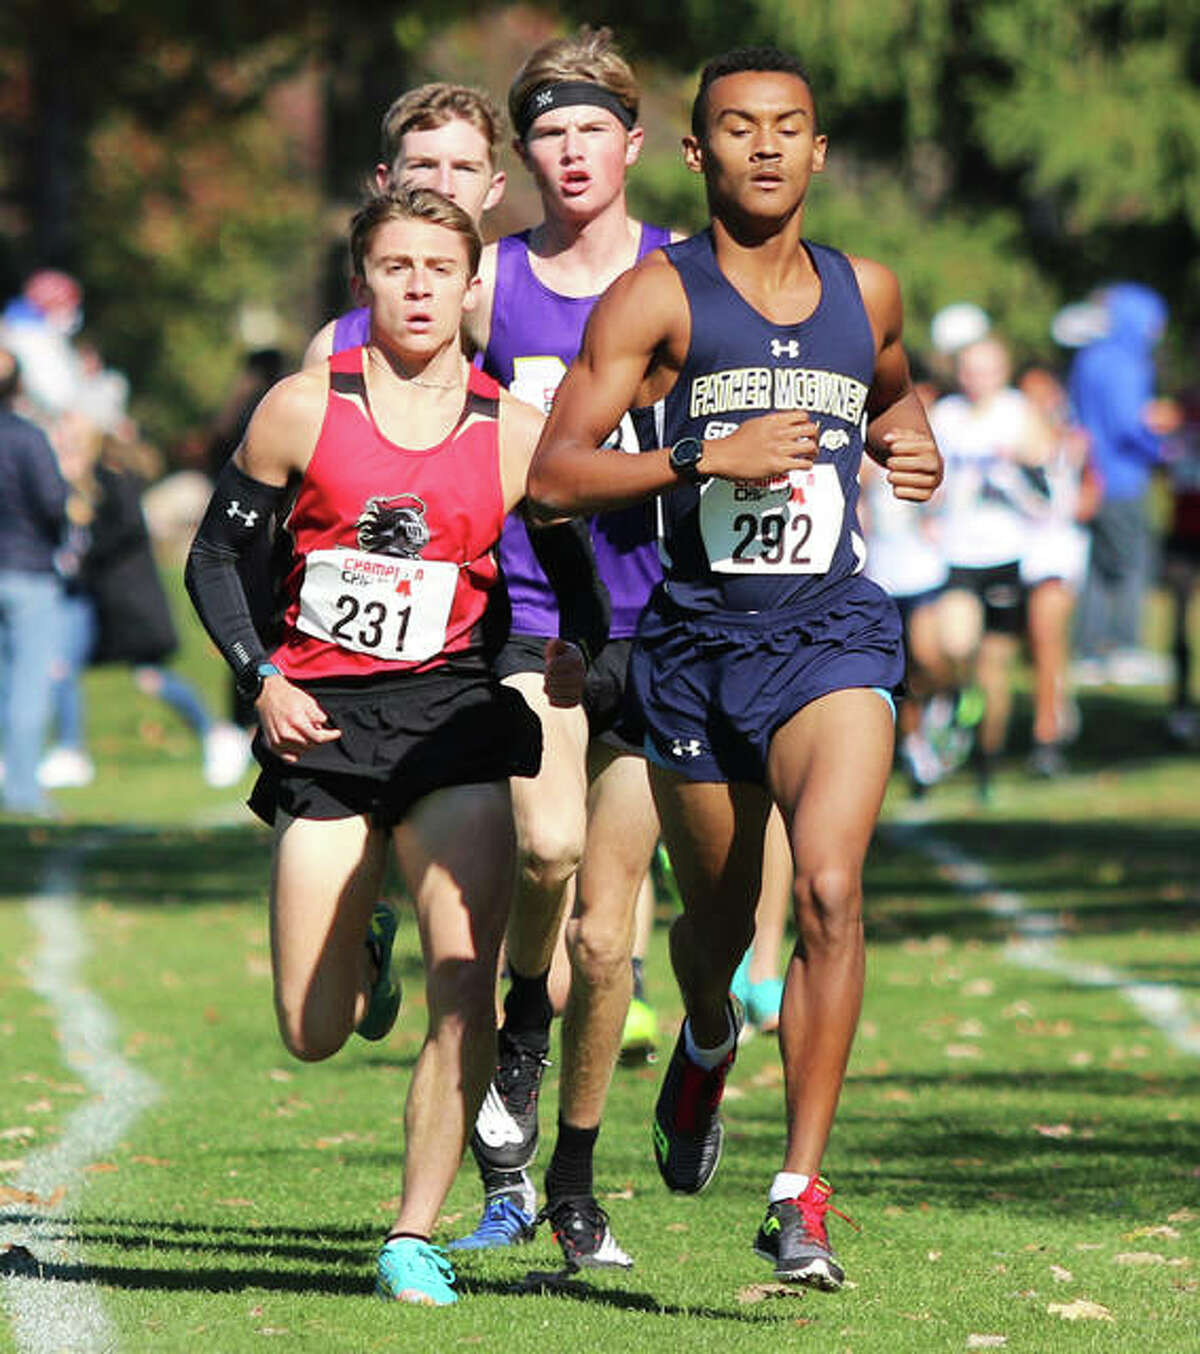 Father McGivney's Tyler Guthrie (right) and Arthur's Layton Hall (left) lead a pair of Monticello runners on the front end in the opening mile of the Decatur St. Teresa Class 1A Sectional boys cross country meet Saturday at Hickory Point golf course in Forsyth. Hall won the race, with Guthrie placing second